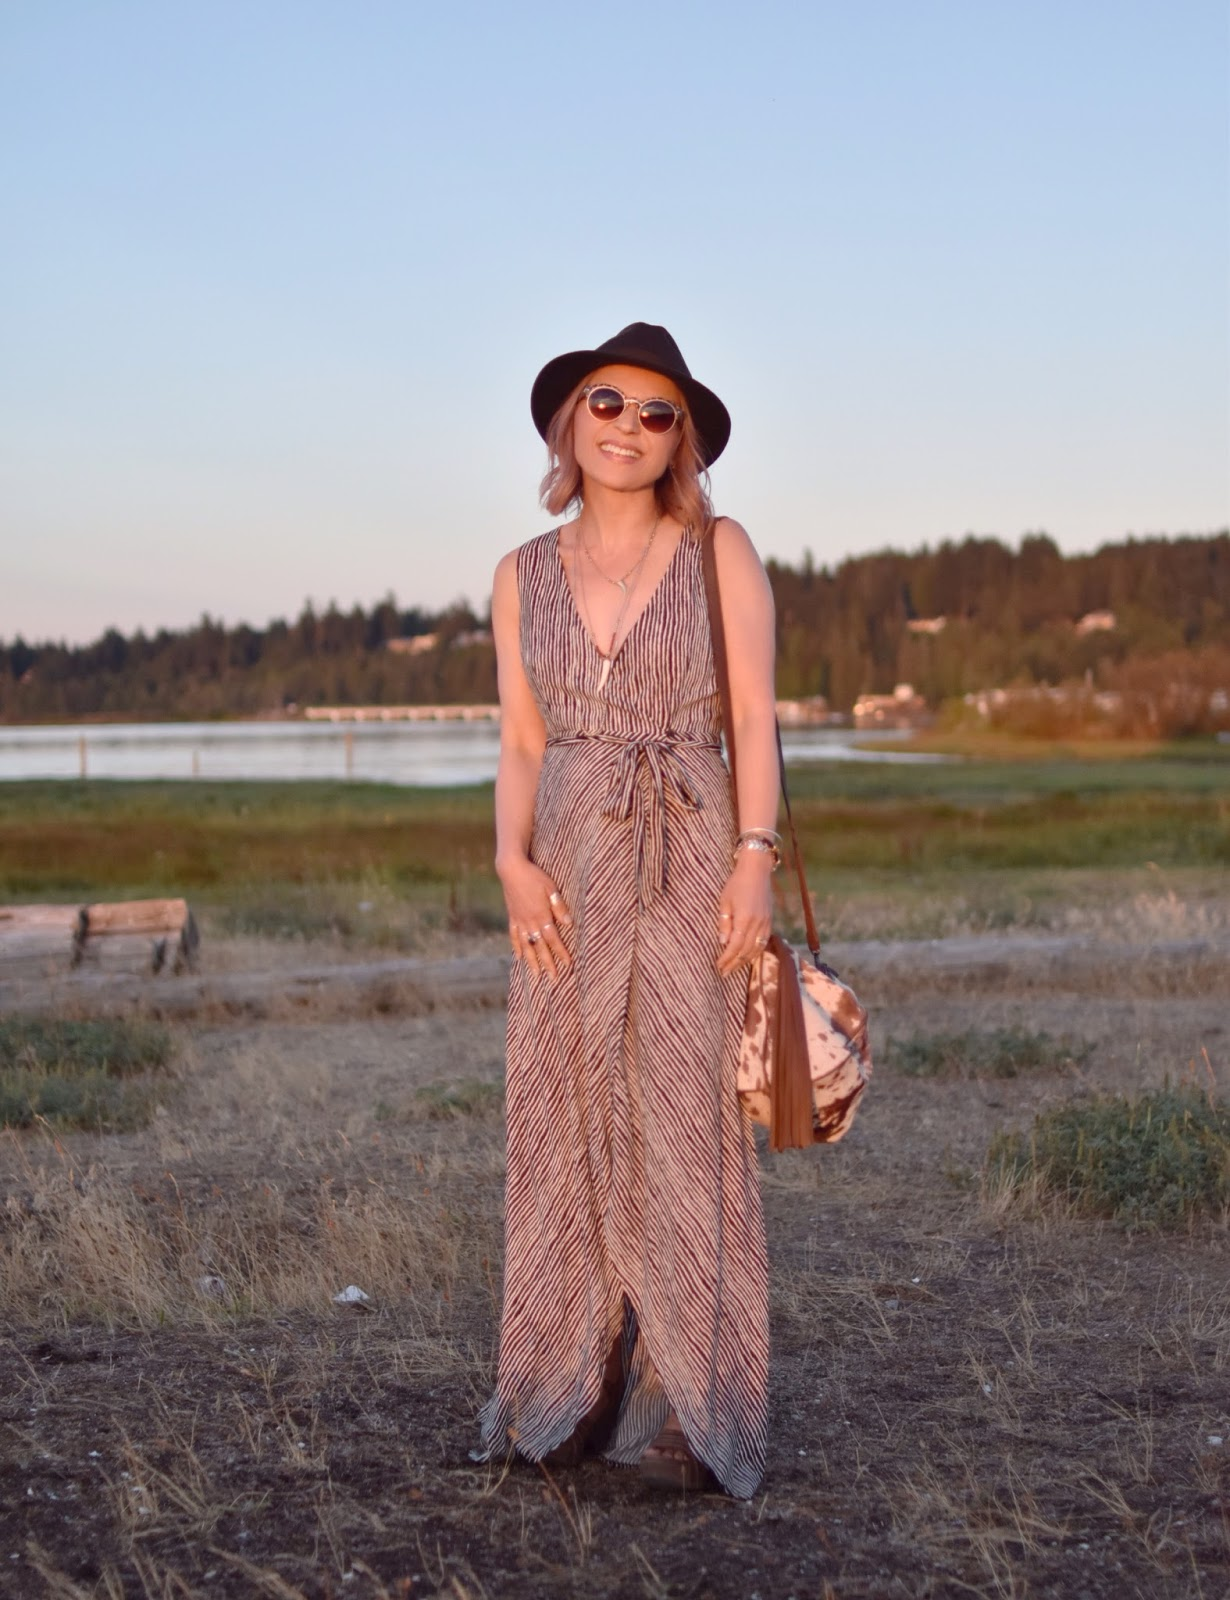 Monika Faulkner personal style inspiration - black and white striped maxi-dress, brown felt fedora, animal-patterned sunglasses, pony-hair bag